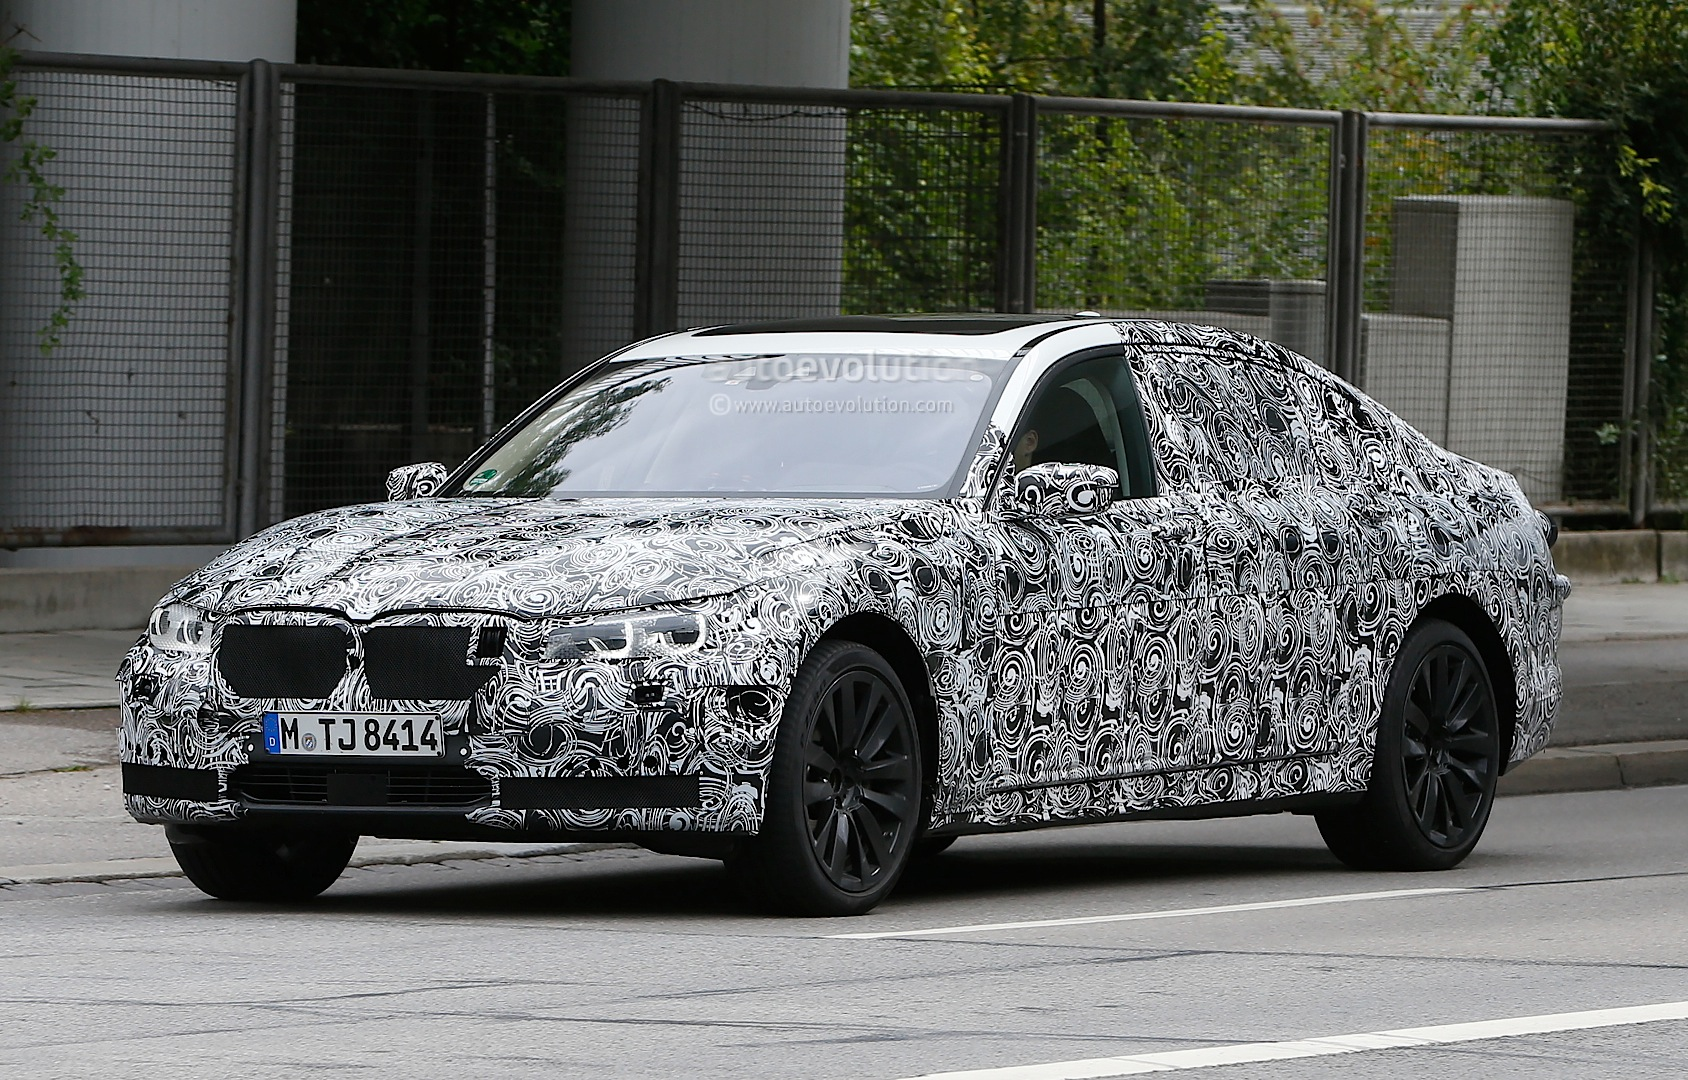 spyshots-2016-bmw-7-series-g11-to-receive-new-engines-and-headlight-design-video_1.jpg